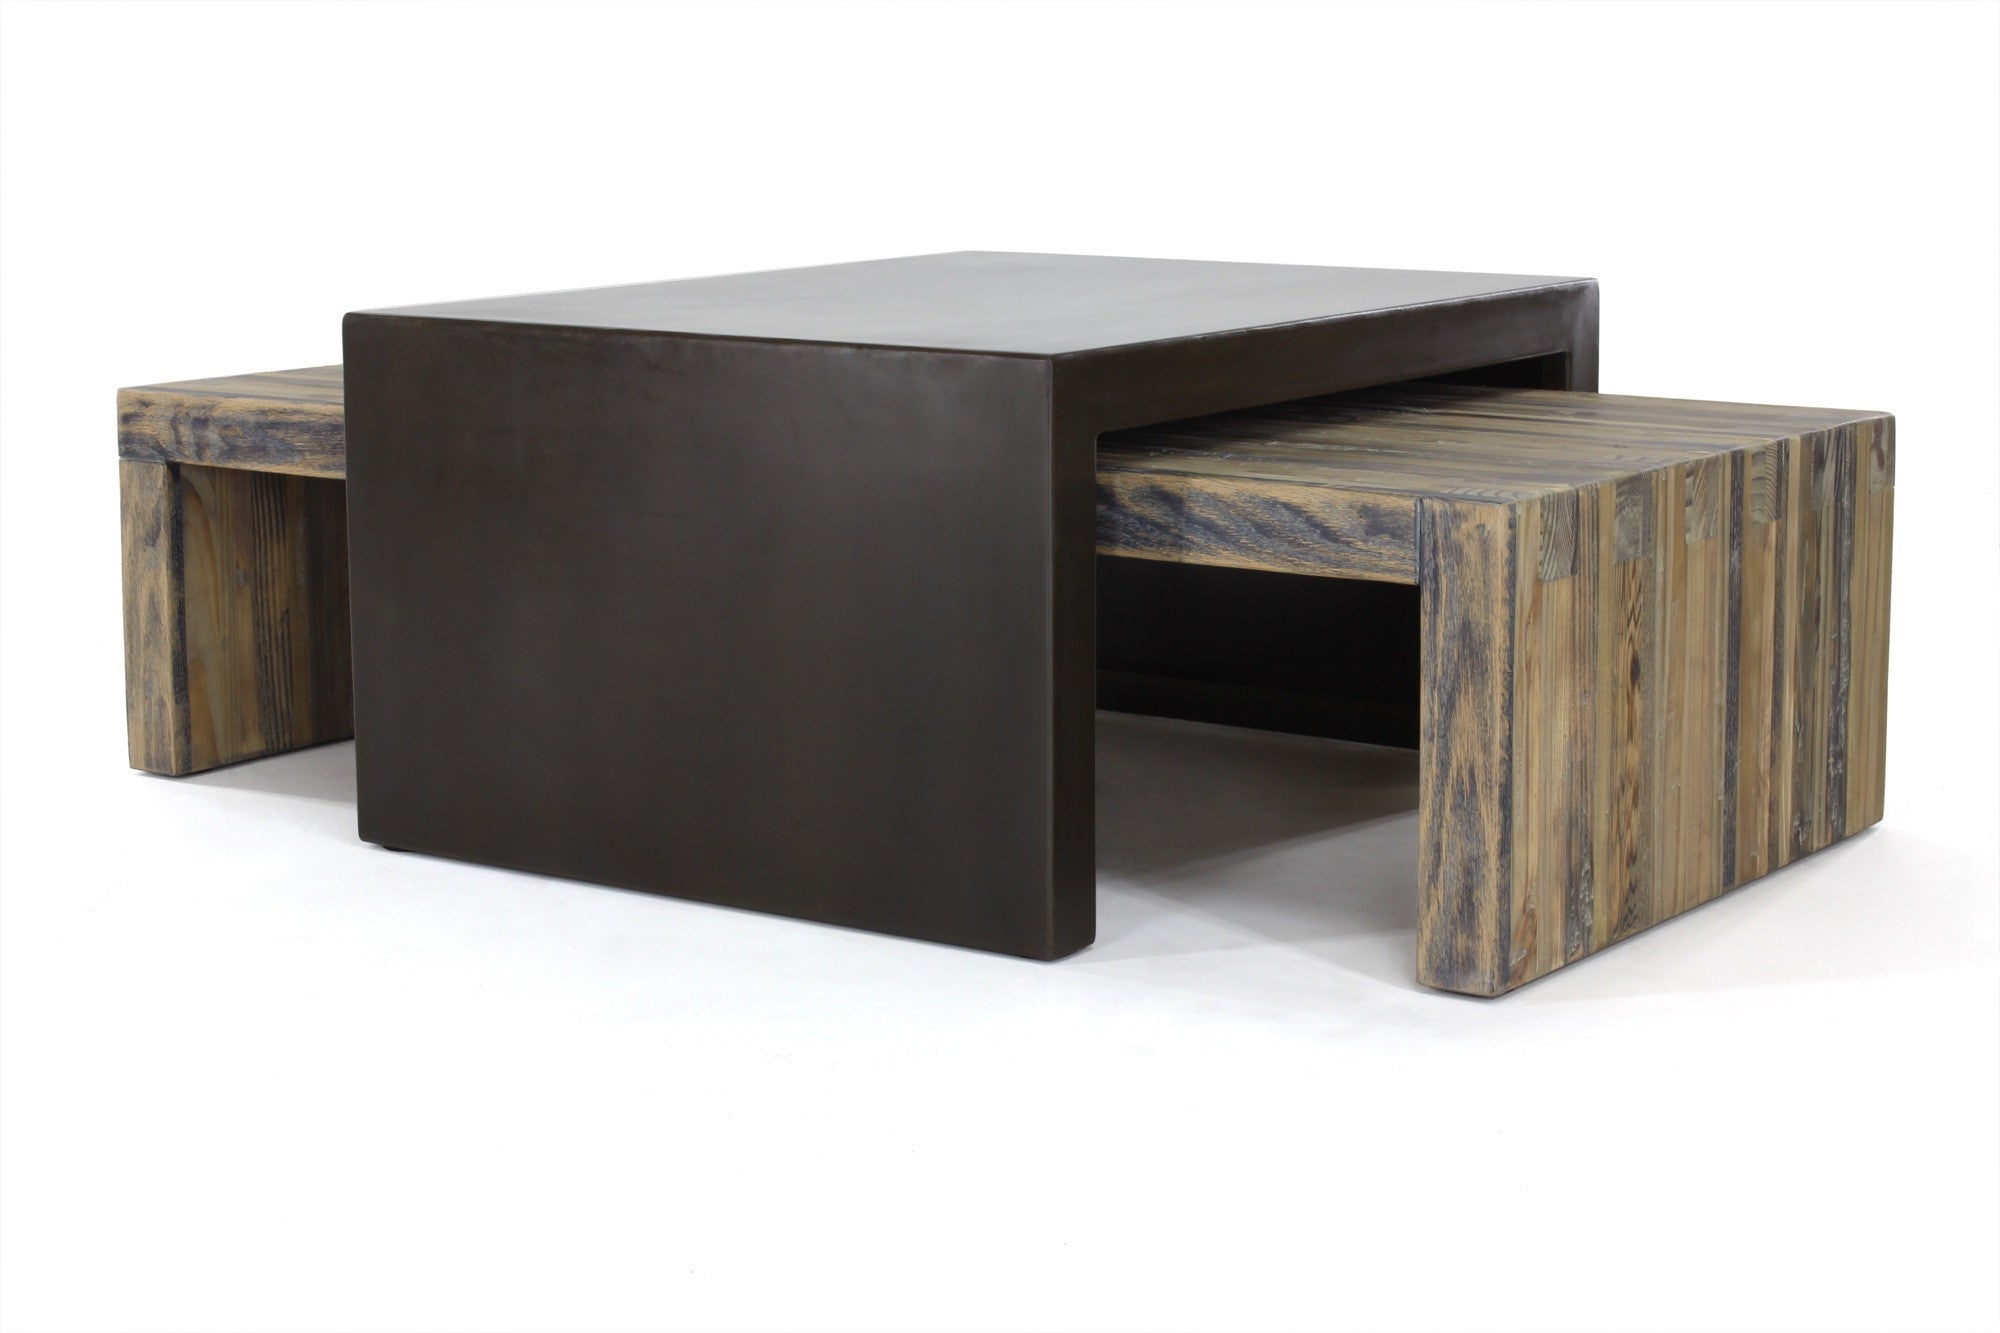 Popular 197 list nesting coffee tables for Small stackable coffee tables